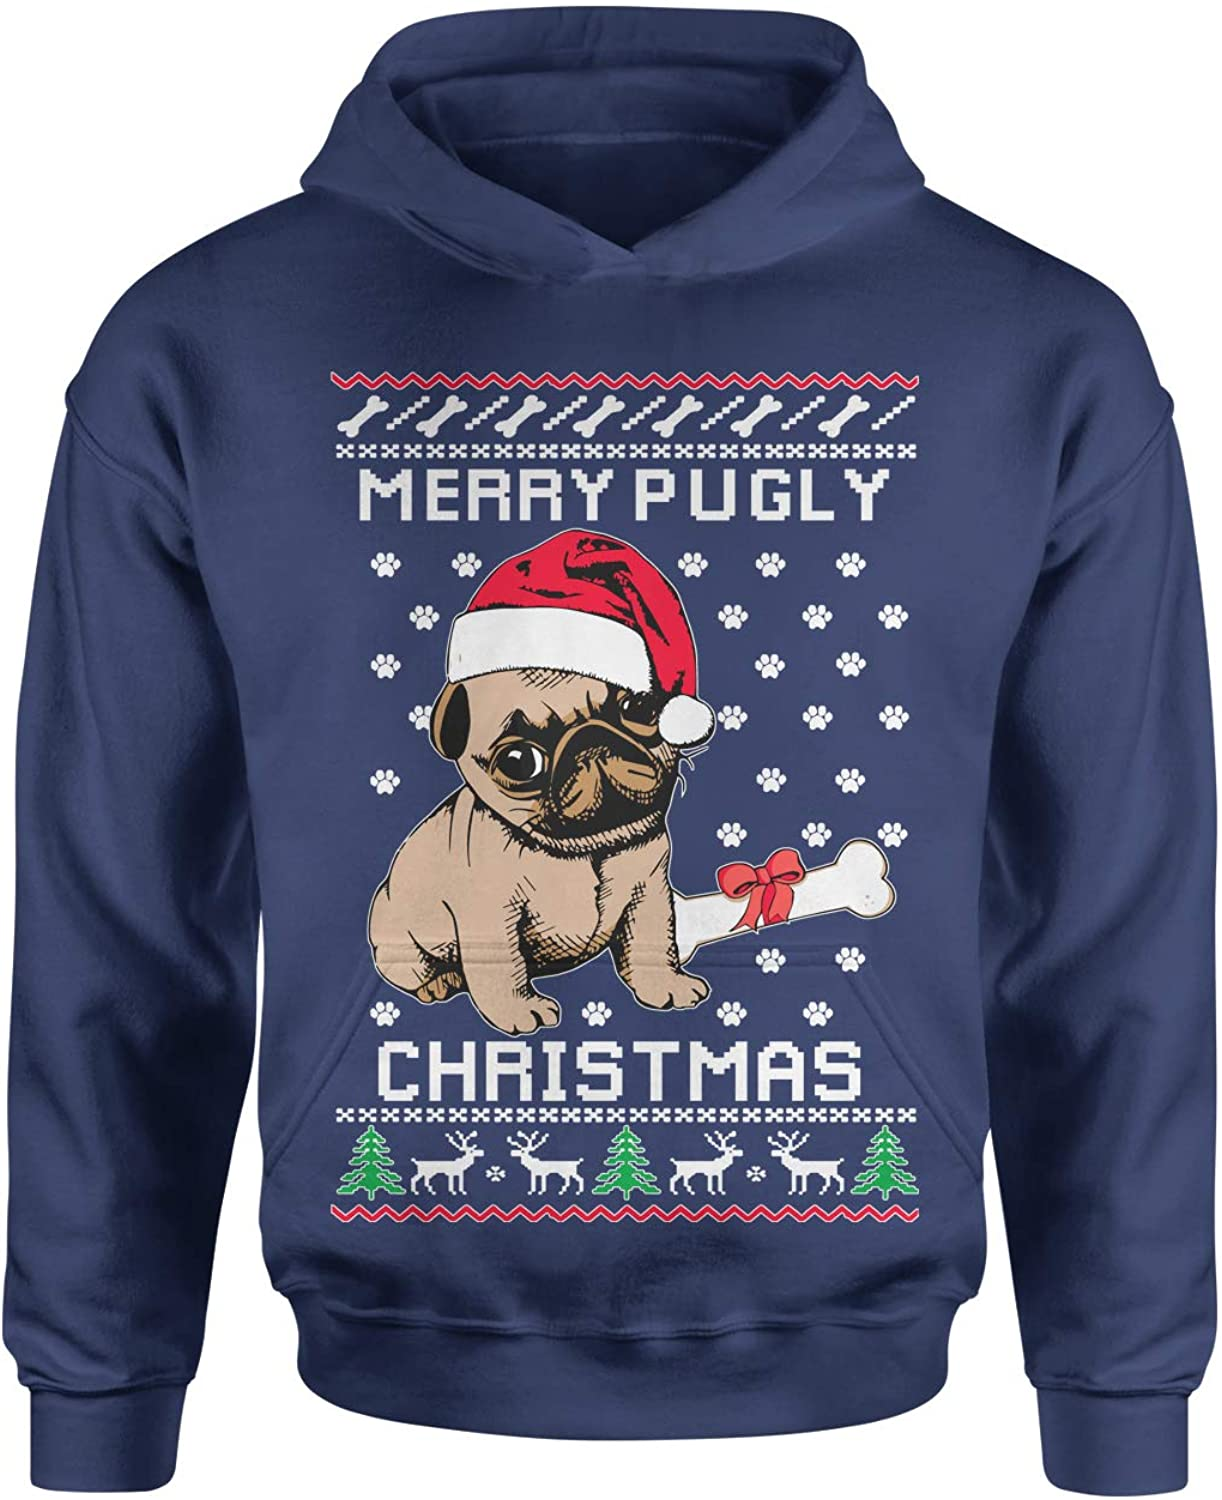 Expression Tees Merry Pugly Christmas Ugly Christmas Youth-Sized Hoodie